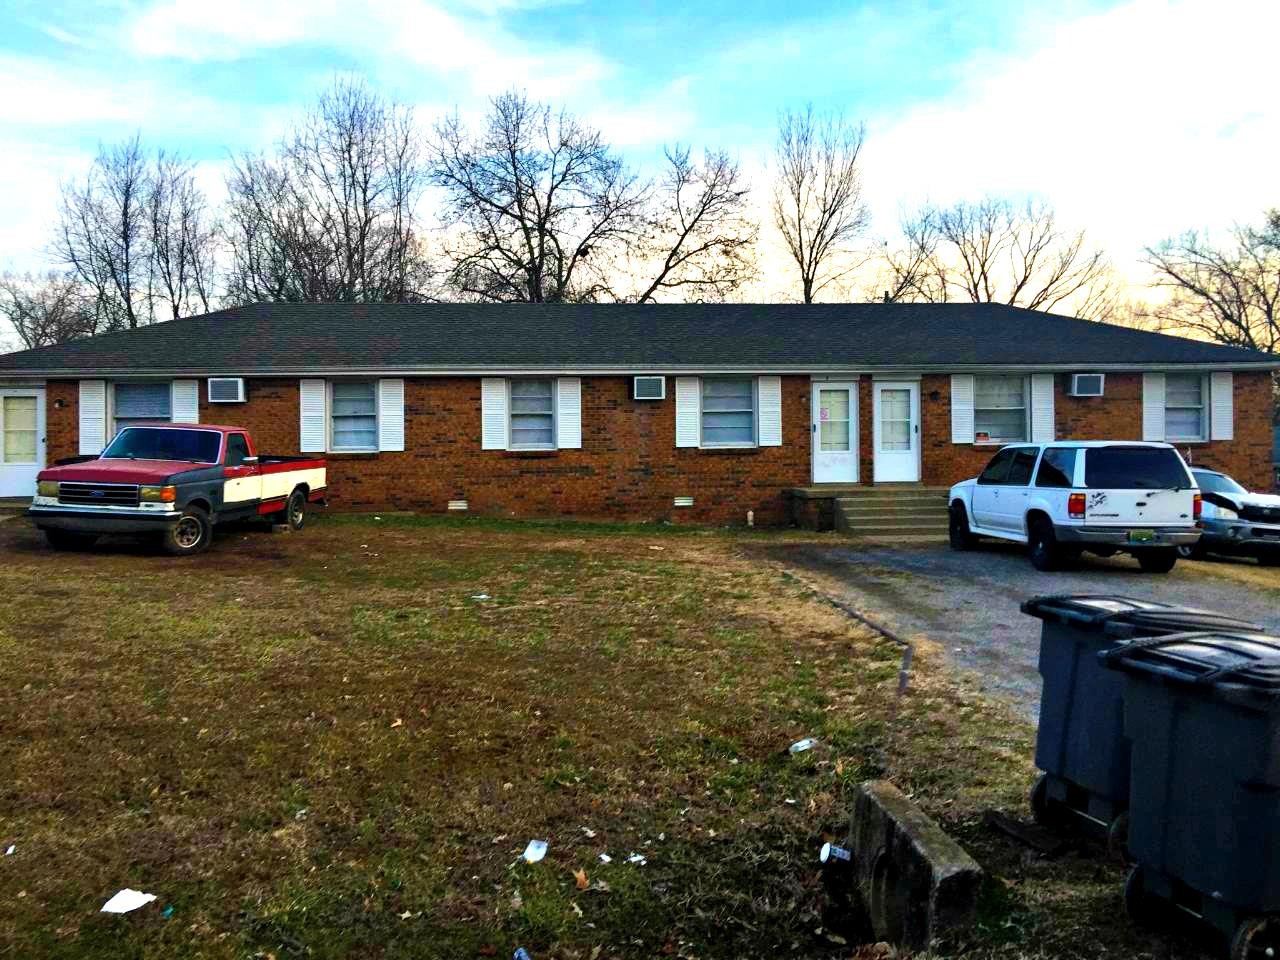 105 Tandy Dr, Clarksville in Montgomery County County, TN 37042 Home for Sale